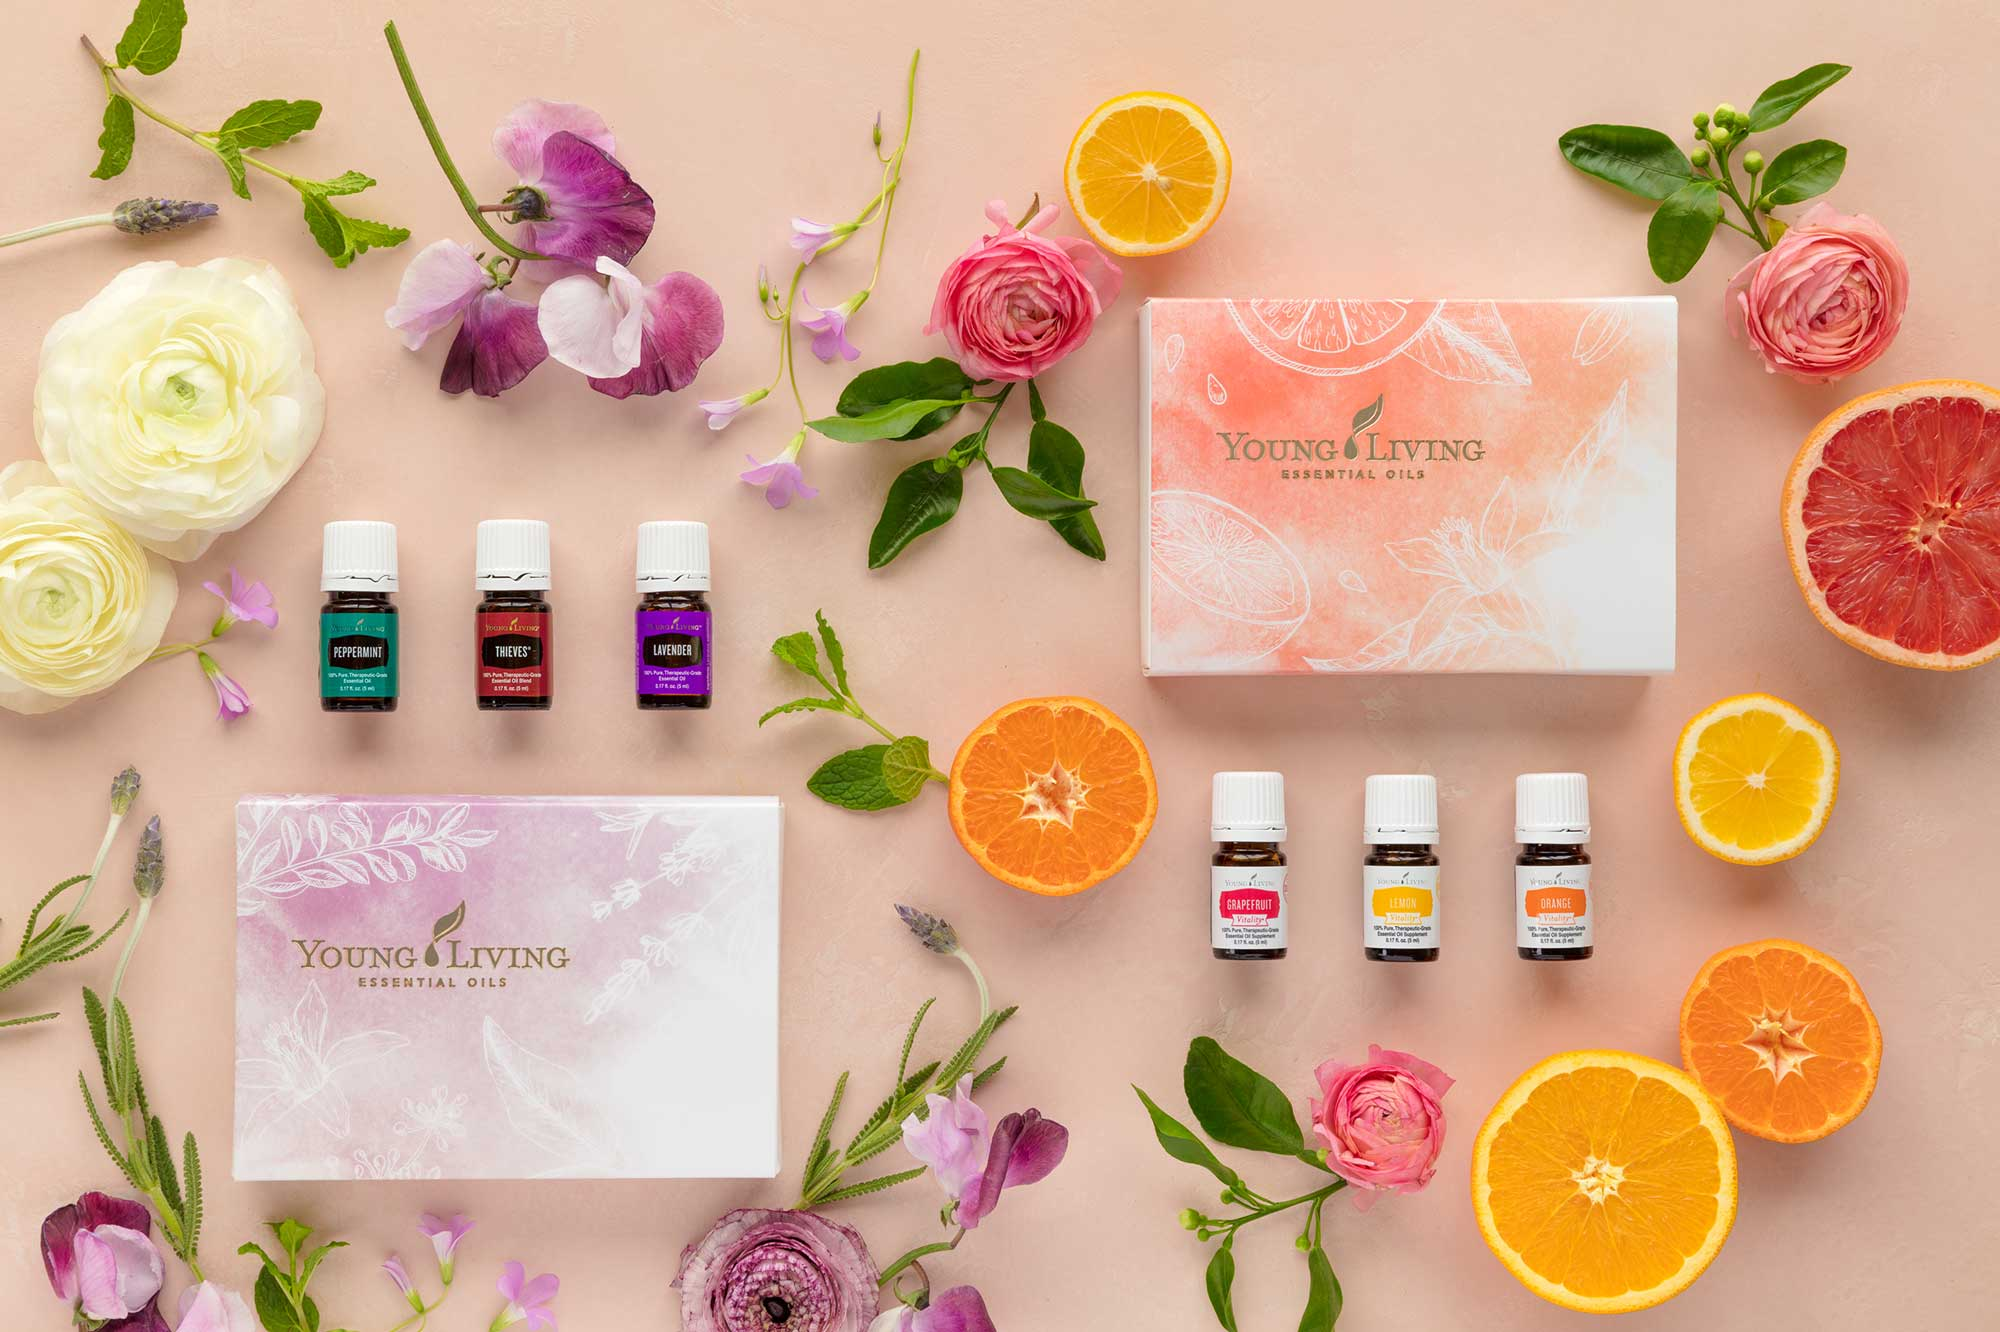 2017 Young Living Spring Special Essential Oil Basics Set and Citrus Vitality Set